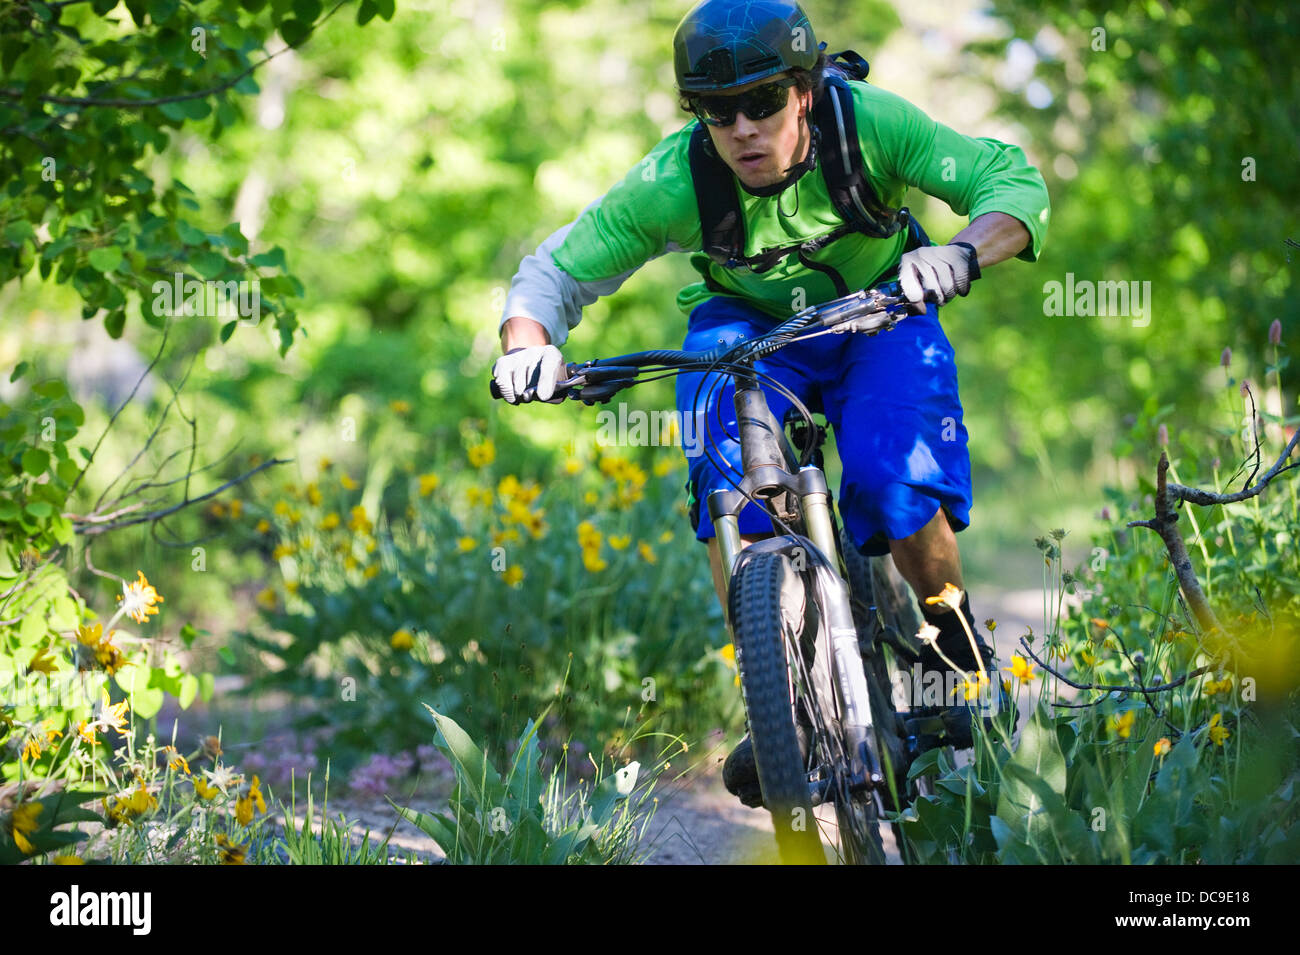 A man, mountain biking on the Scott's Lake trail in South Lake Tahoe, CA. - Stock Image